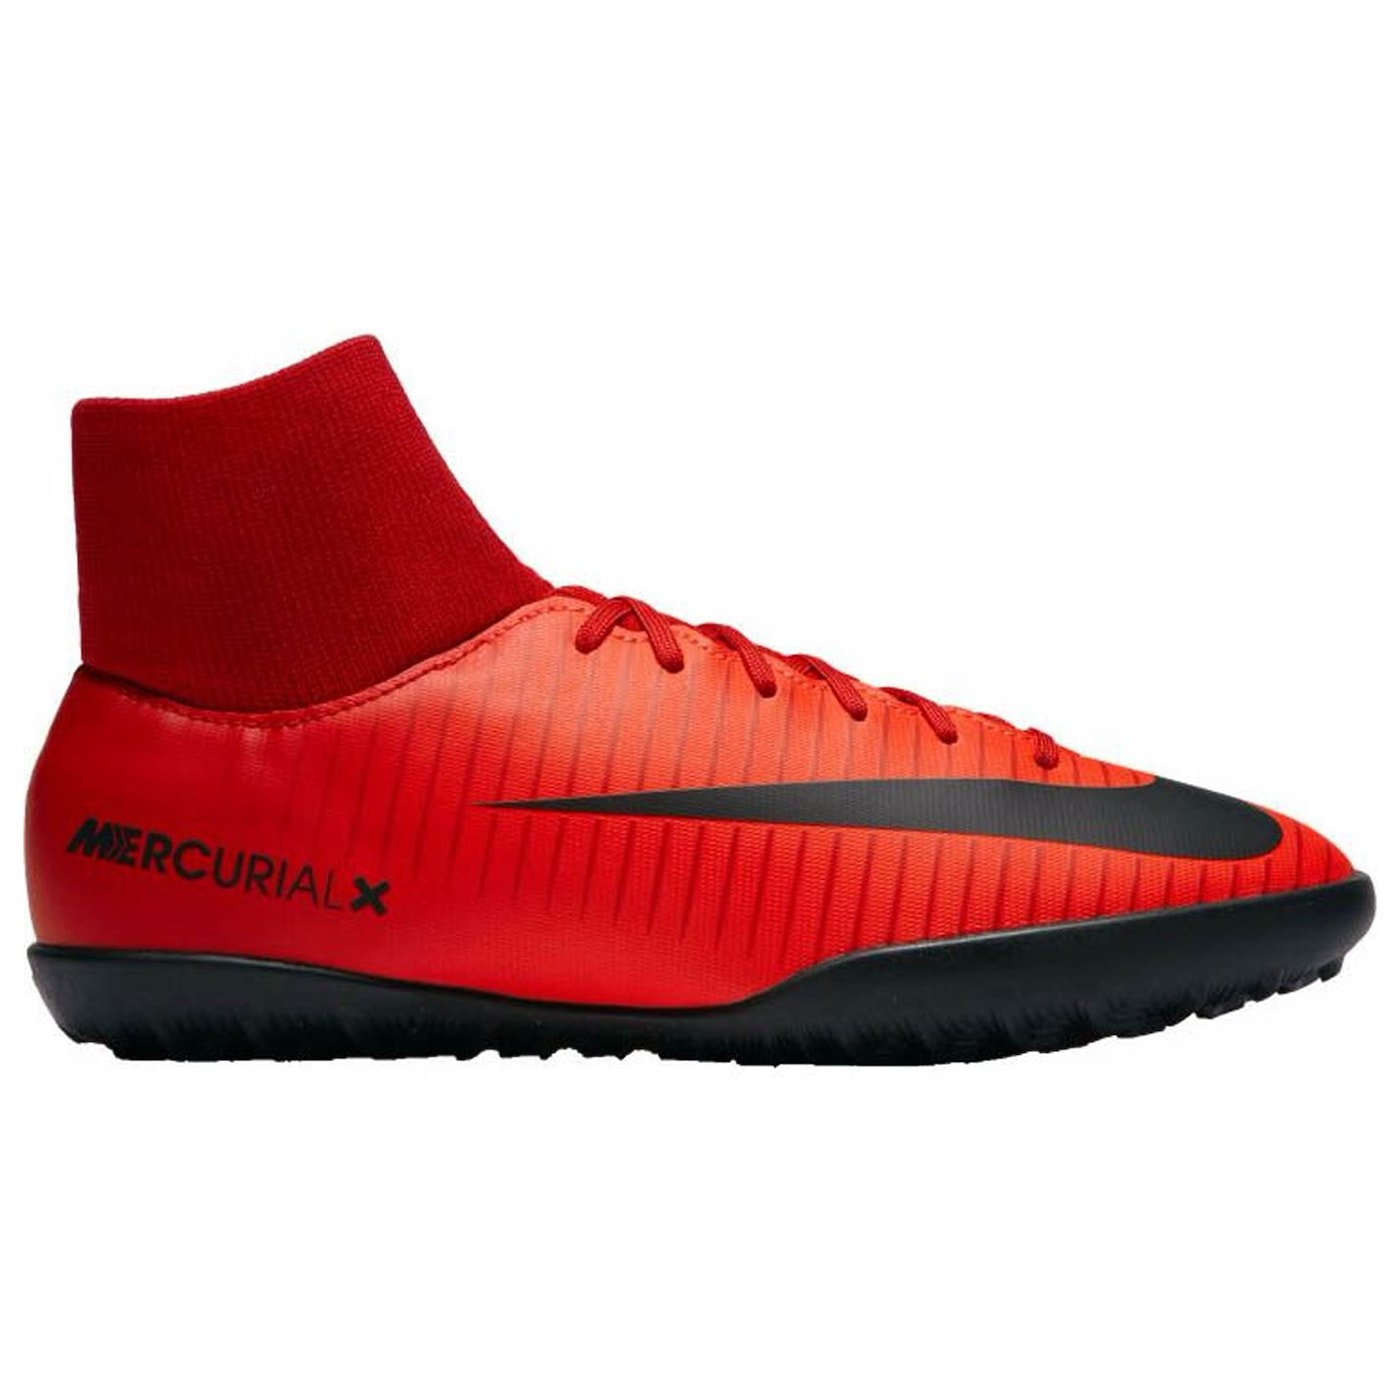 Nike Mercurial Victory DF Junior Astro Turf Trainers